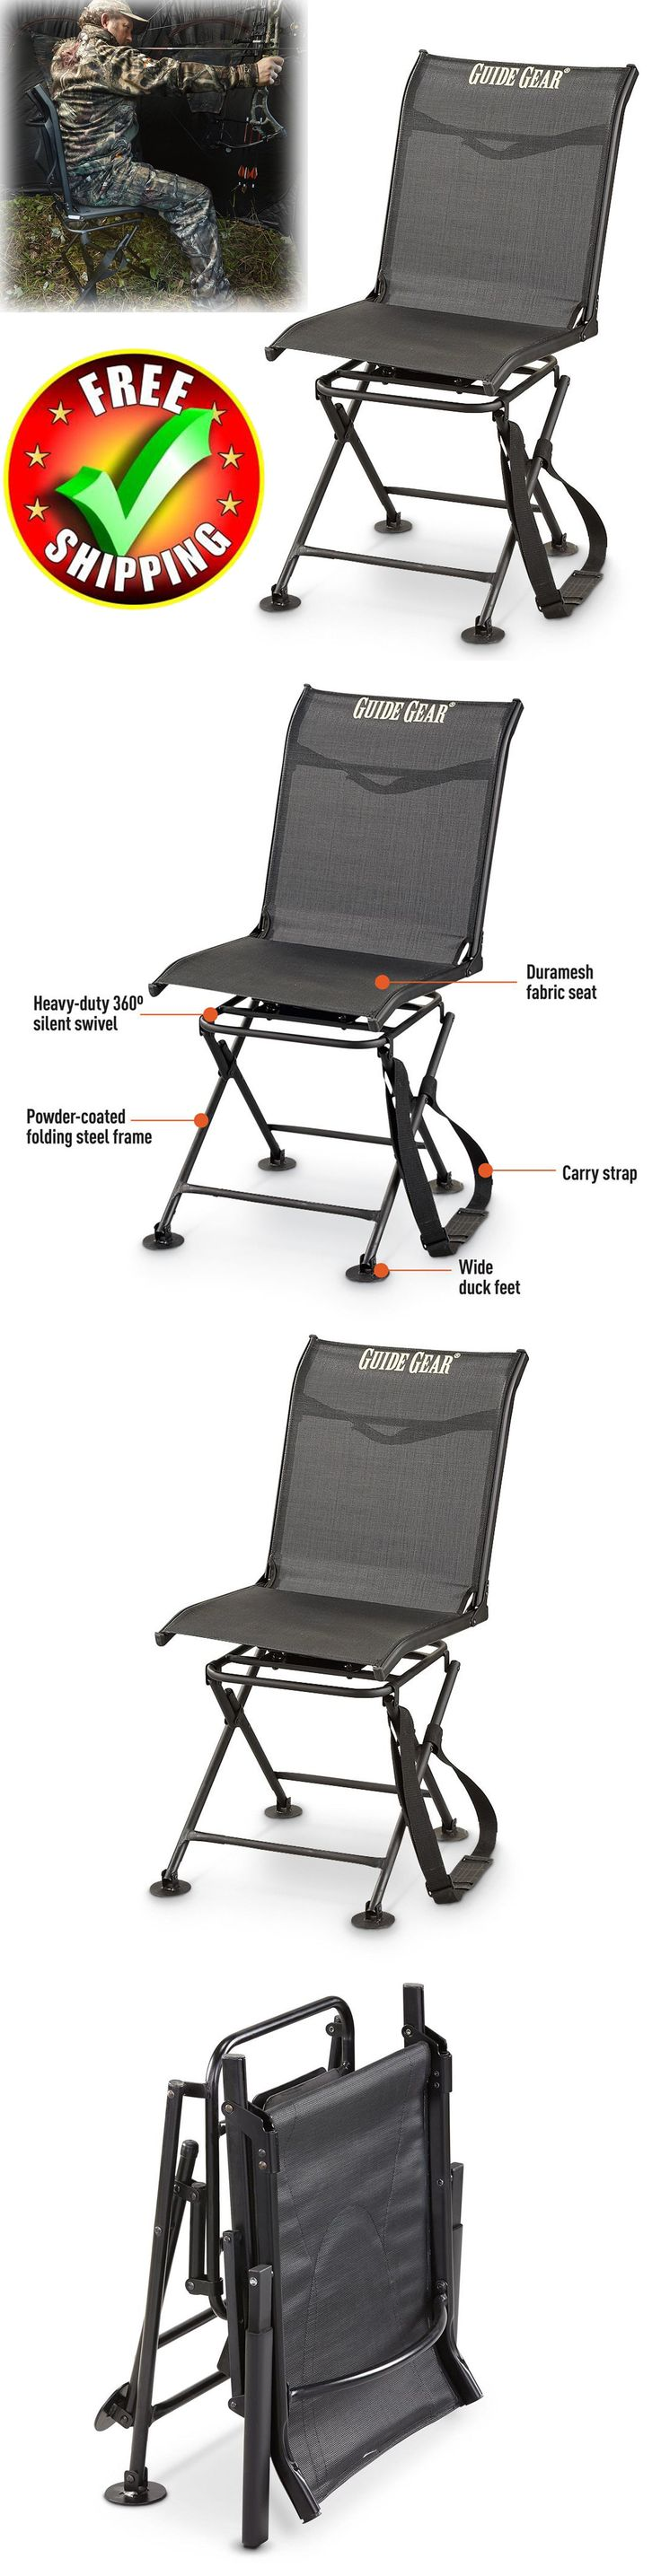 948 best Seats and Chairs images on Pinterest